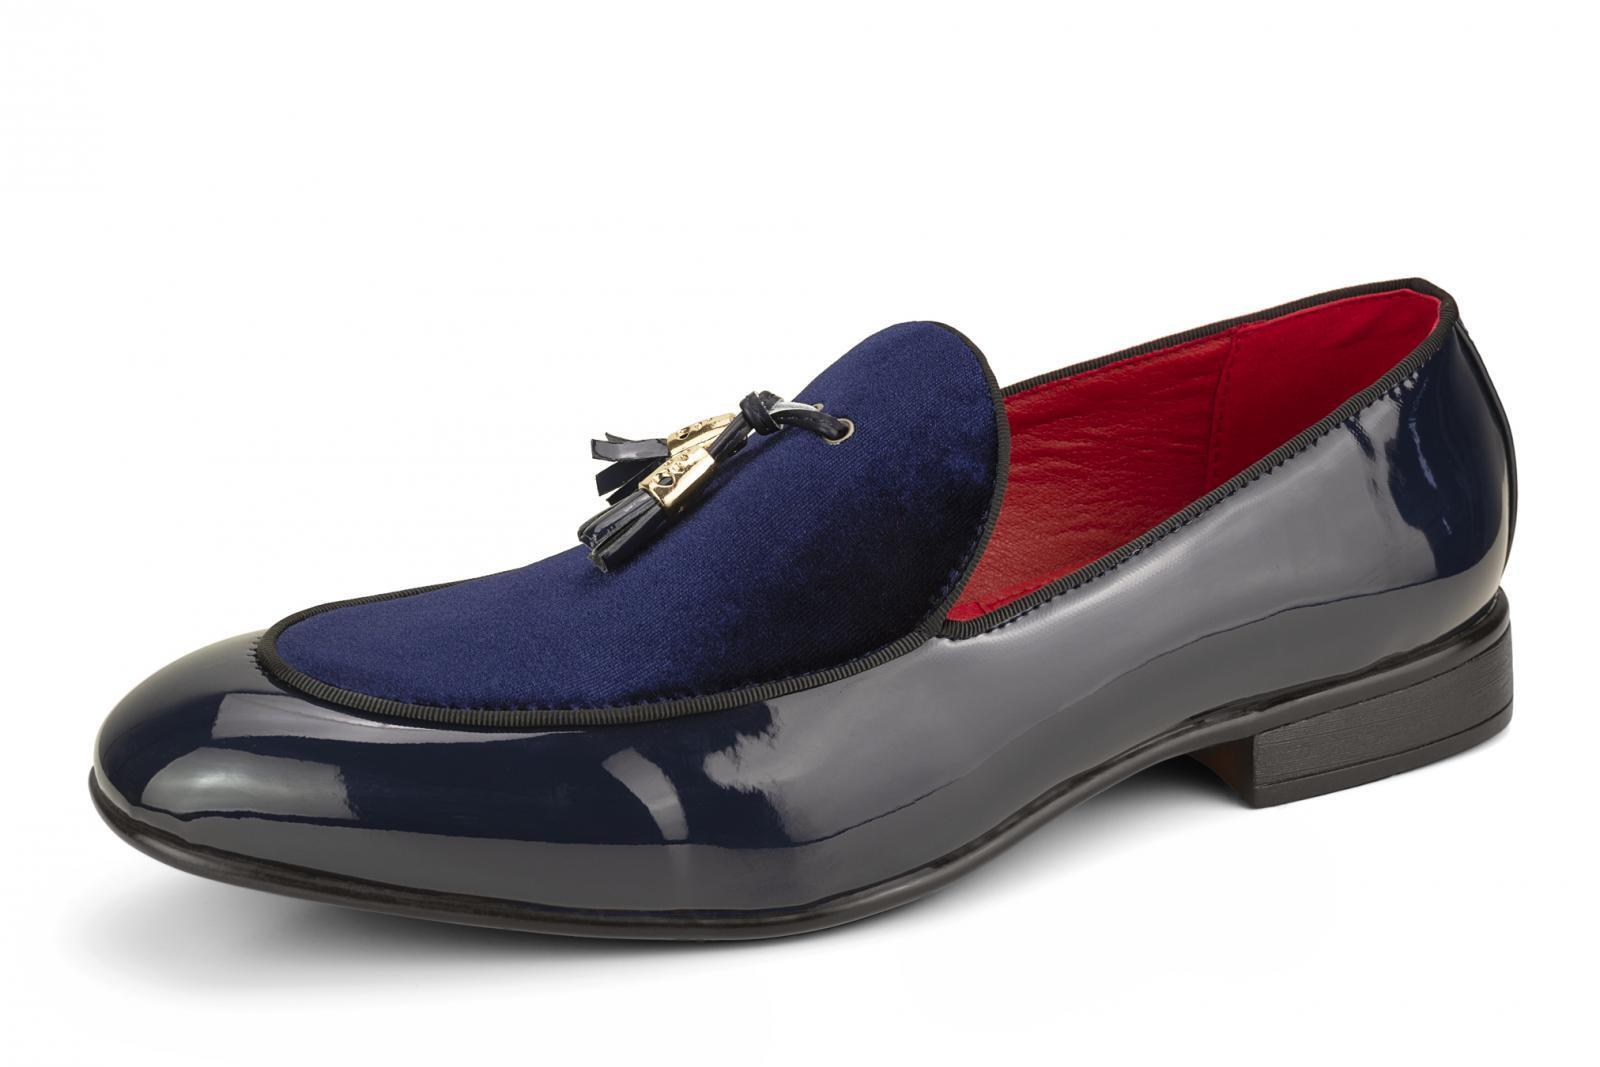 Uomo Slip Driving On Patent Shiny Tussle Driving Slip Loafers Leder Smart Casual Blau Schuhes b3b850